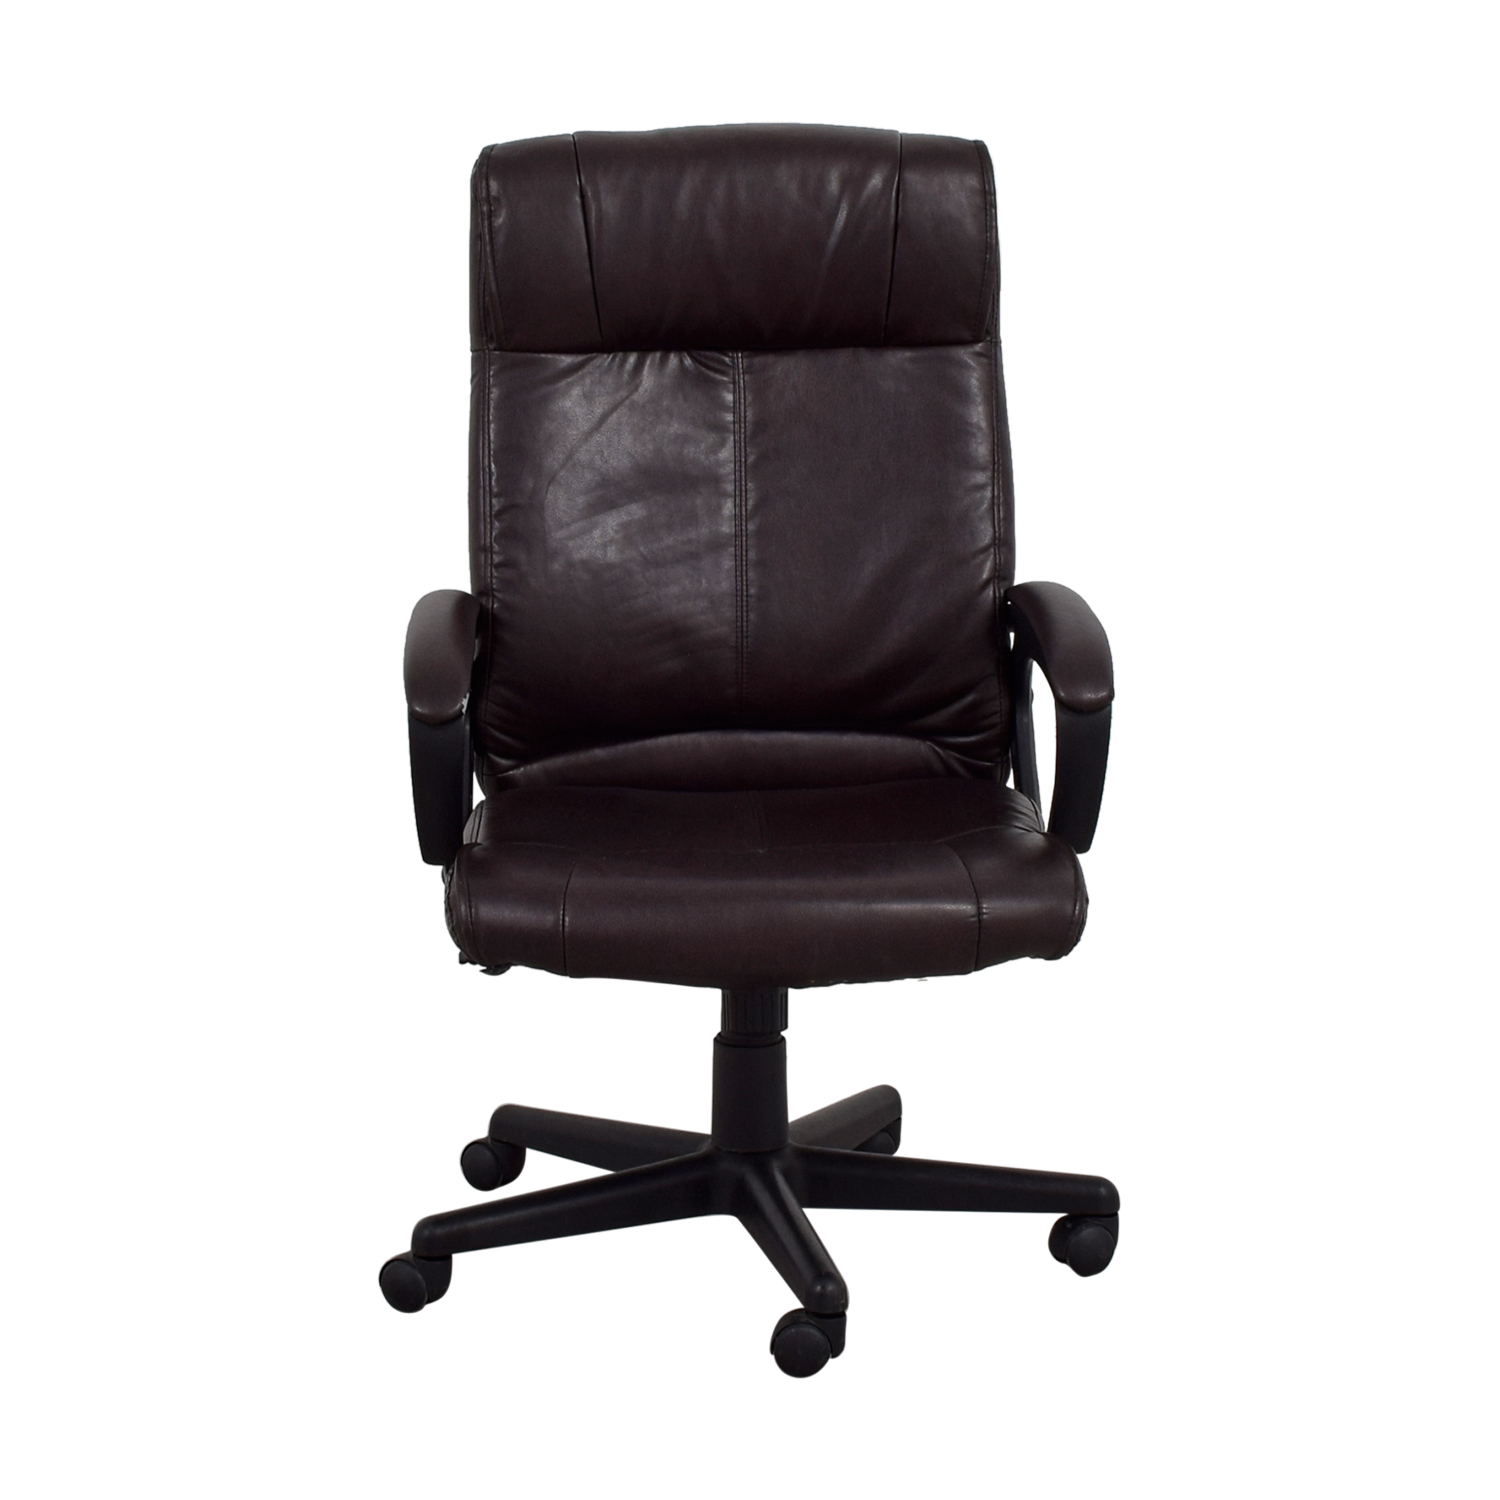 Brown Leather Desk Chair / Home Office Chairs